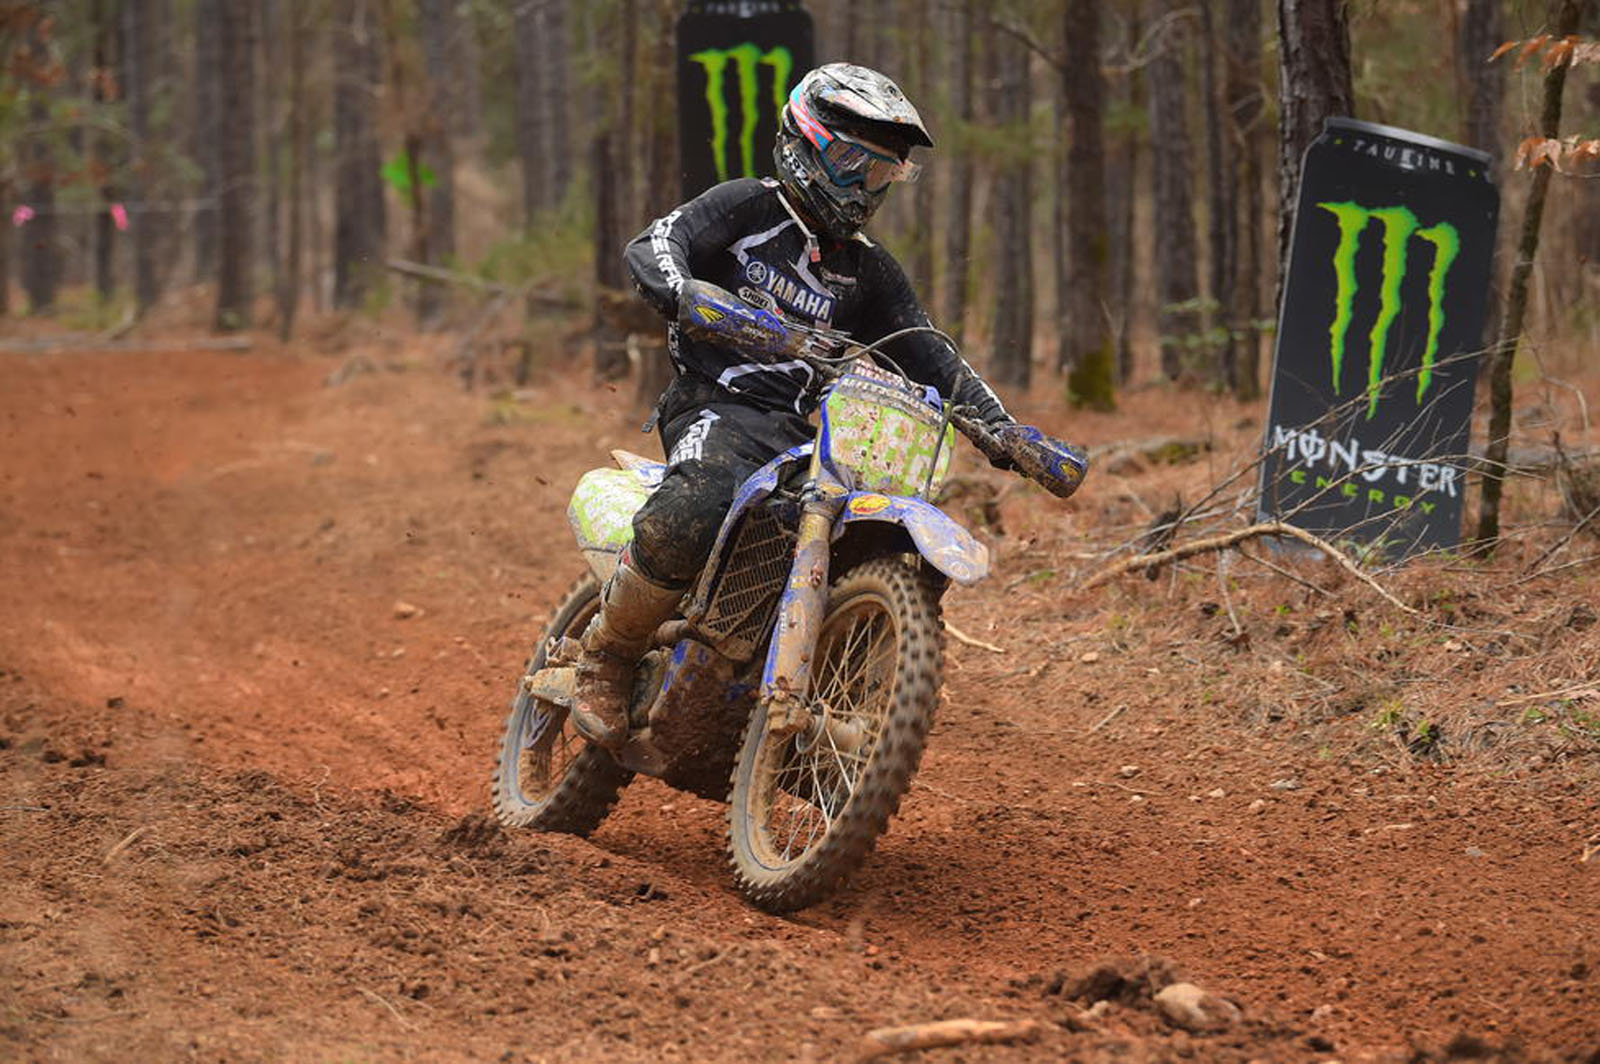 Jeremy Girroir back in GNCC action